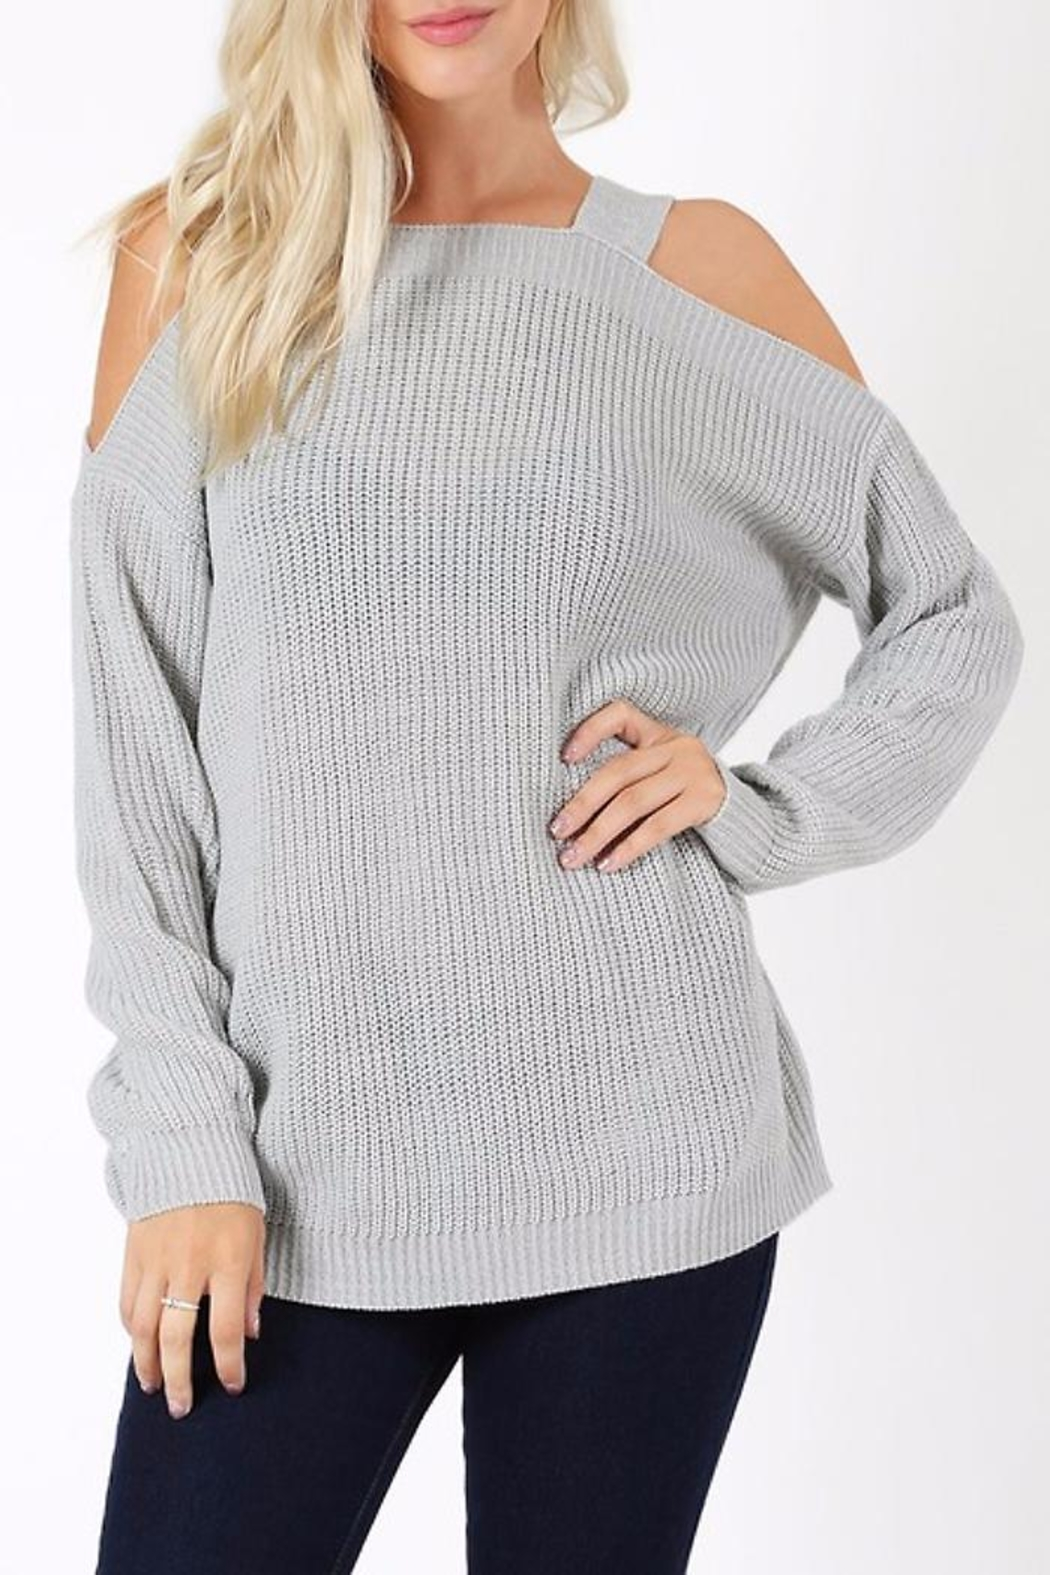 People Outfitter My Chunky Sweater - Front Cropped Image